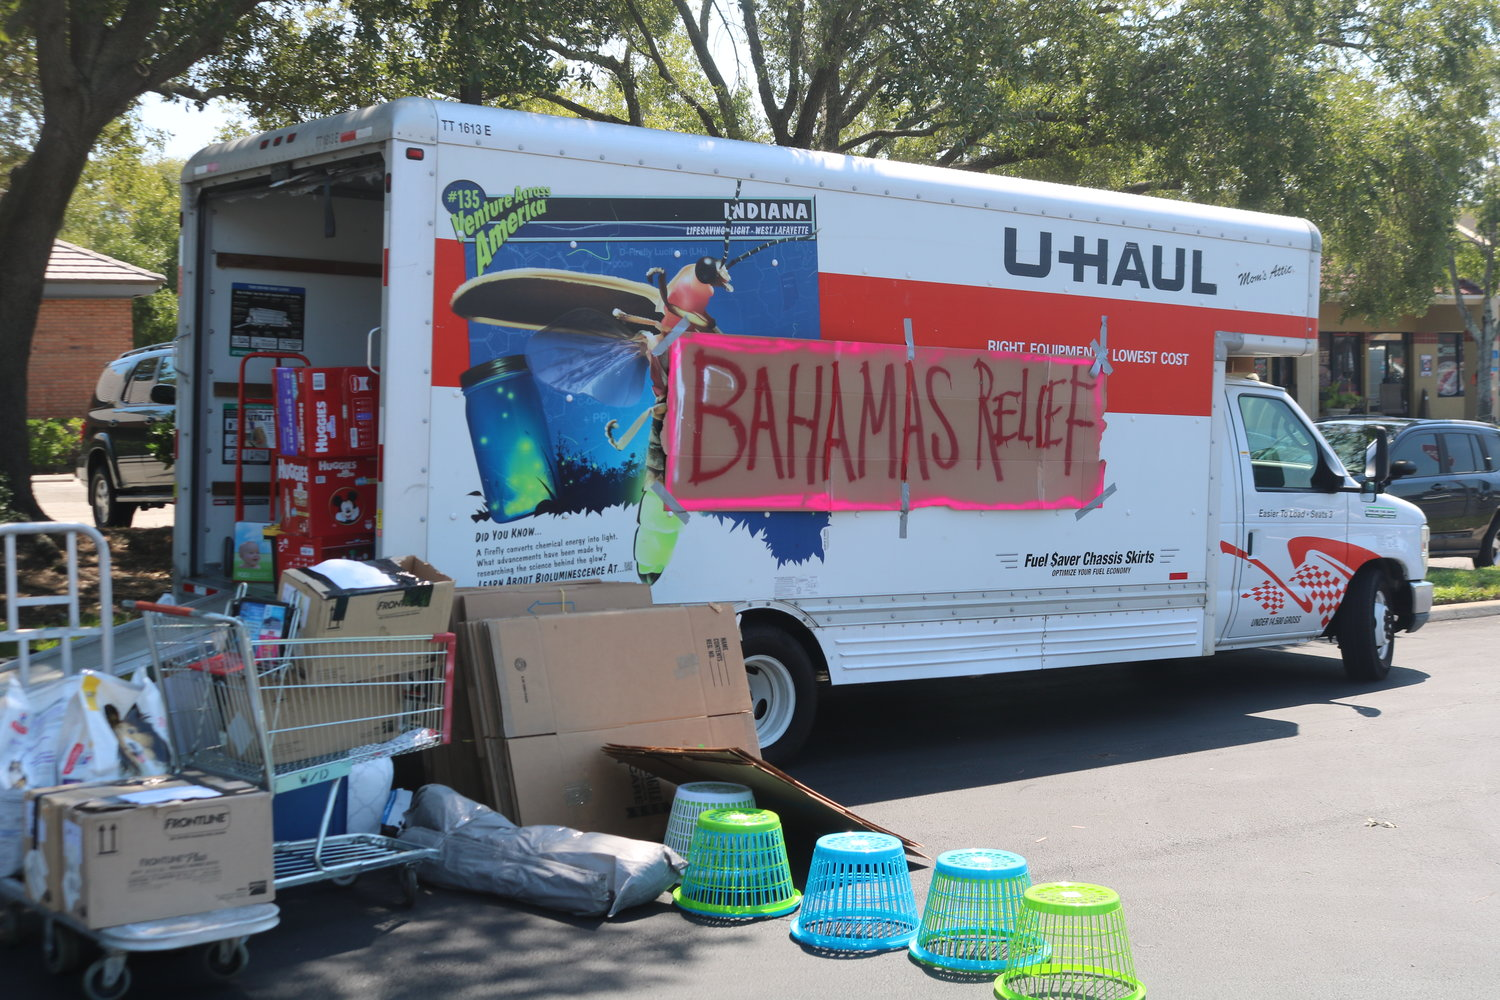 Multiple UHaul trucks rented by Mignone are filling up with supplies donated by Ponte Vedra residents.